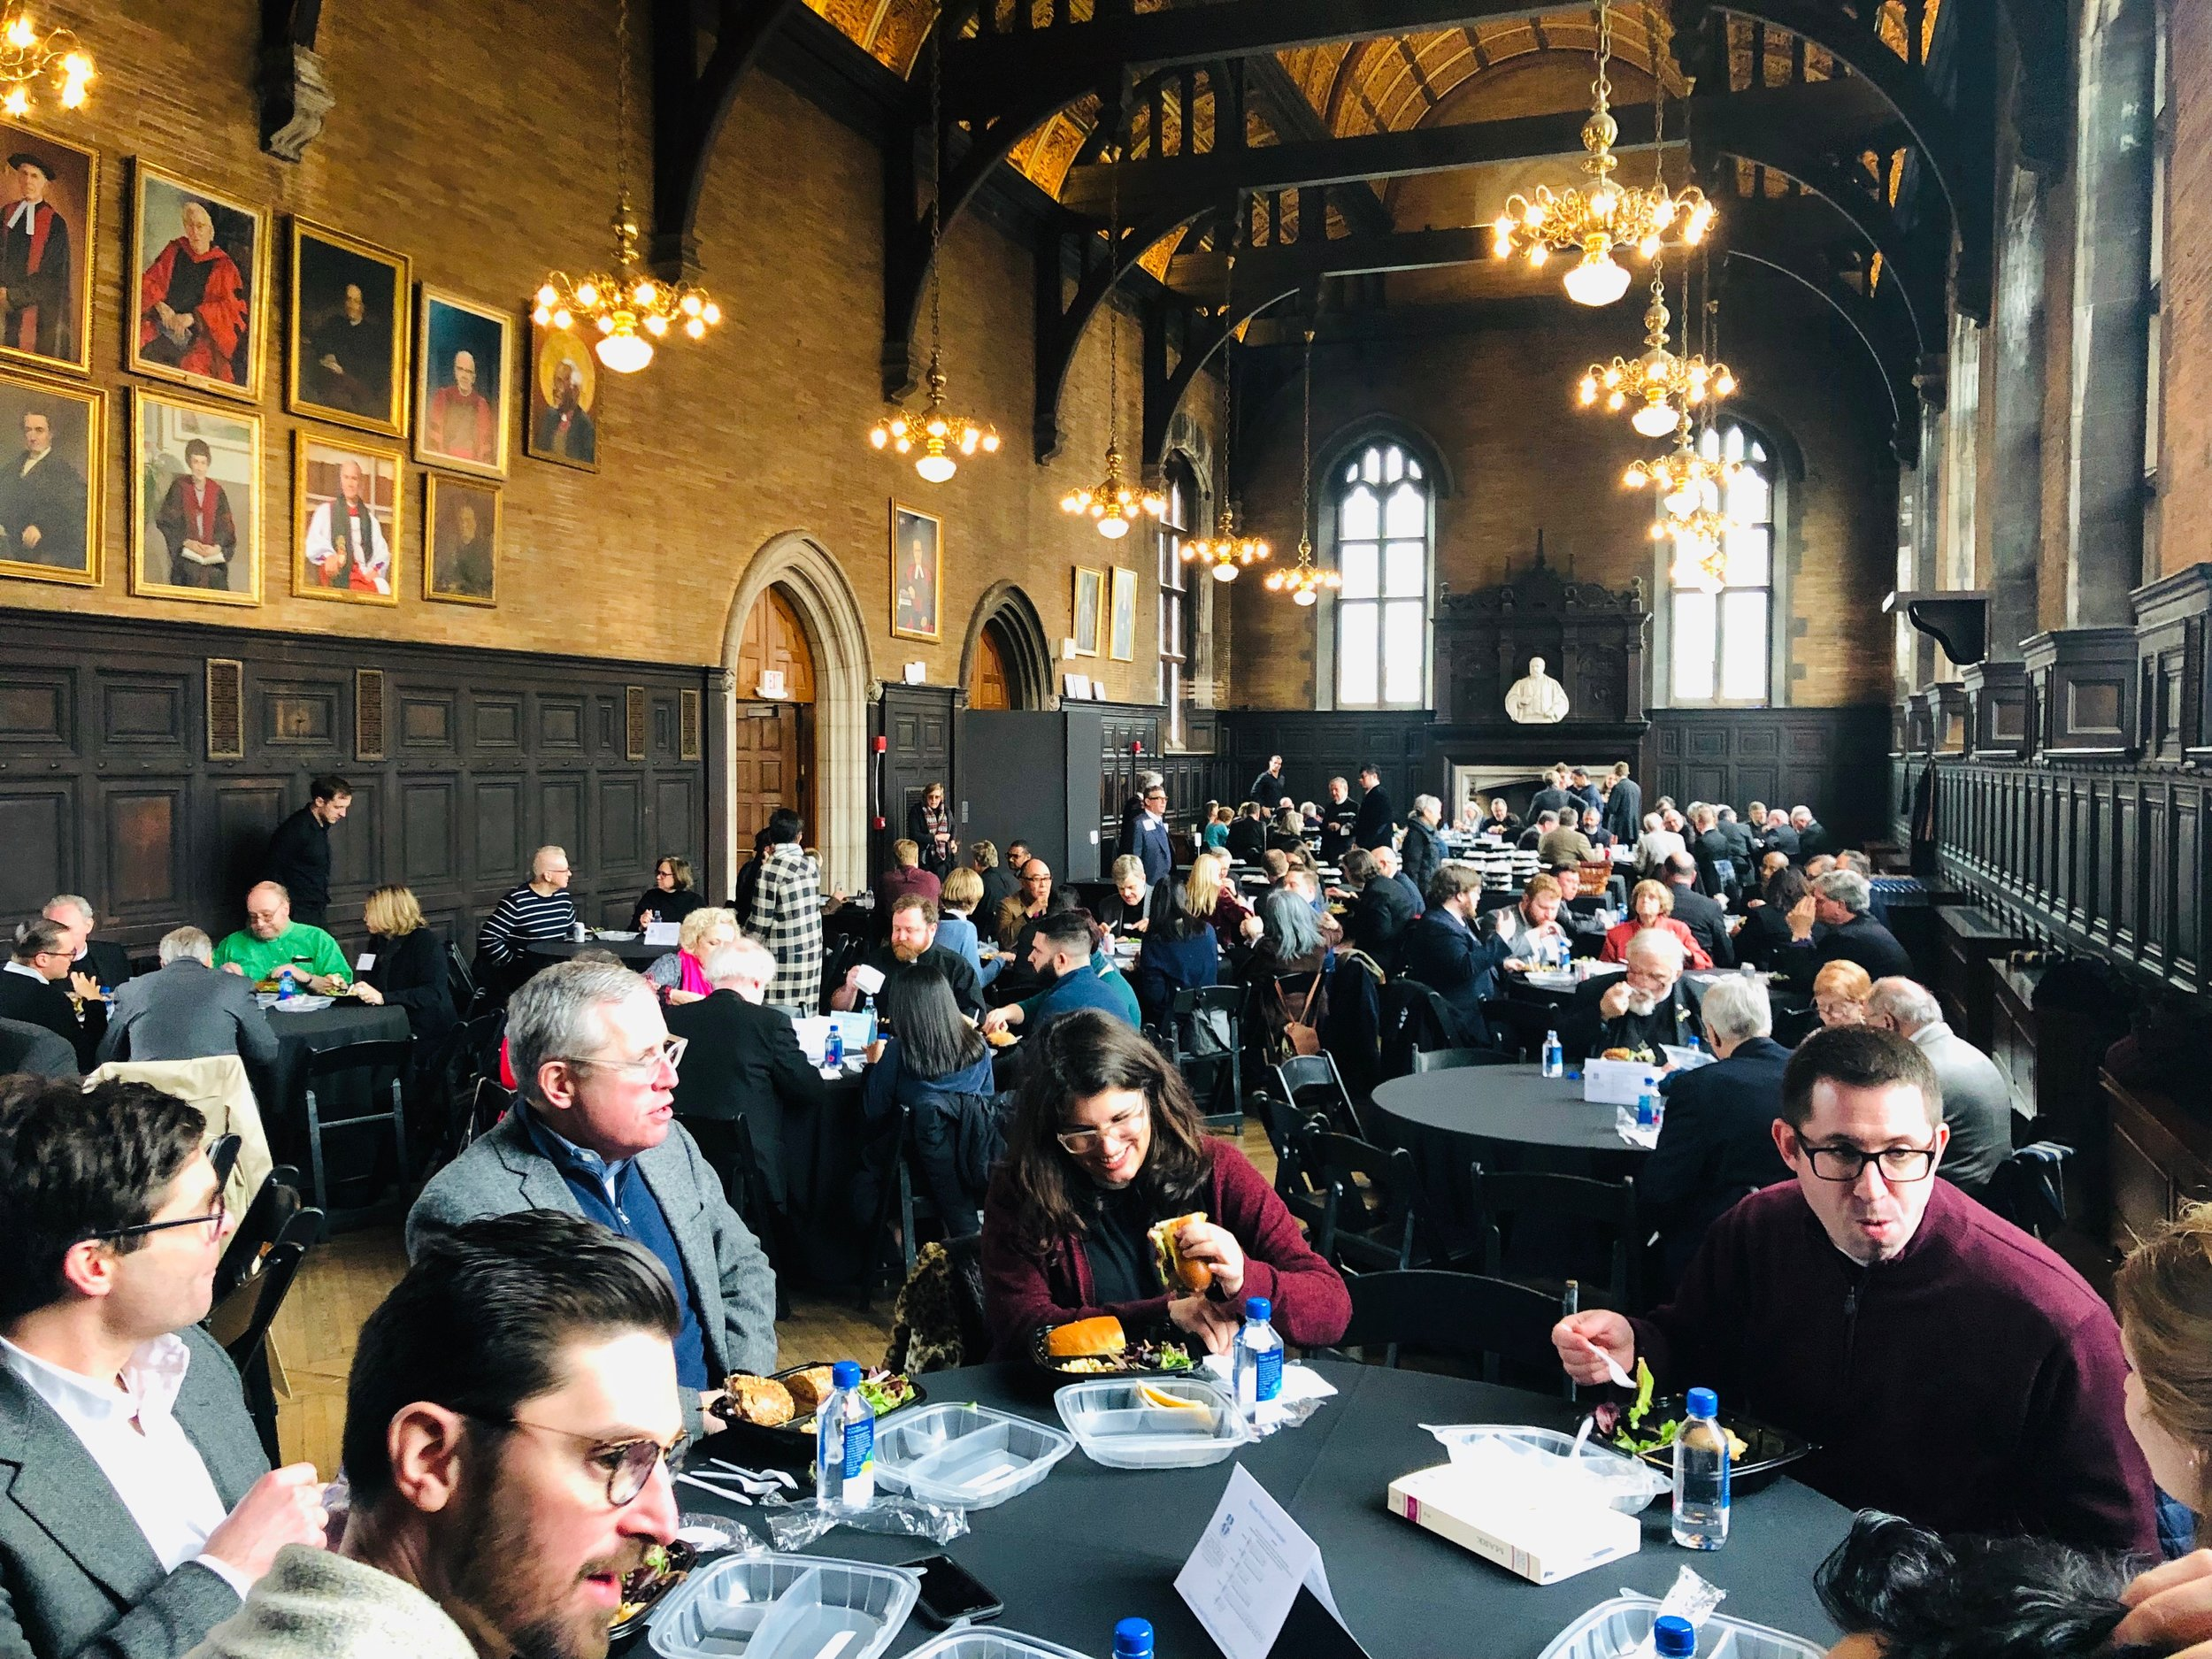 Paddock Lectures Lunch in General Seminary Refectoy2.jpeg